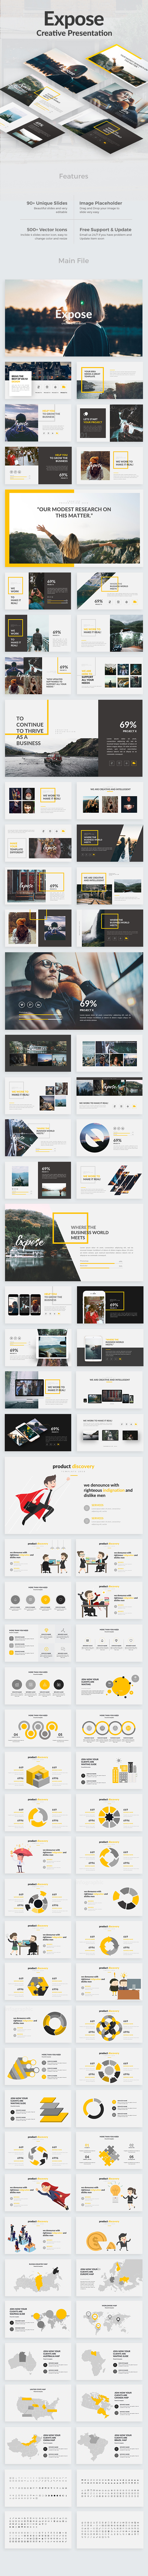 GraphicRiver Expose Creative Keynote Template 20981040